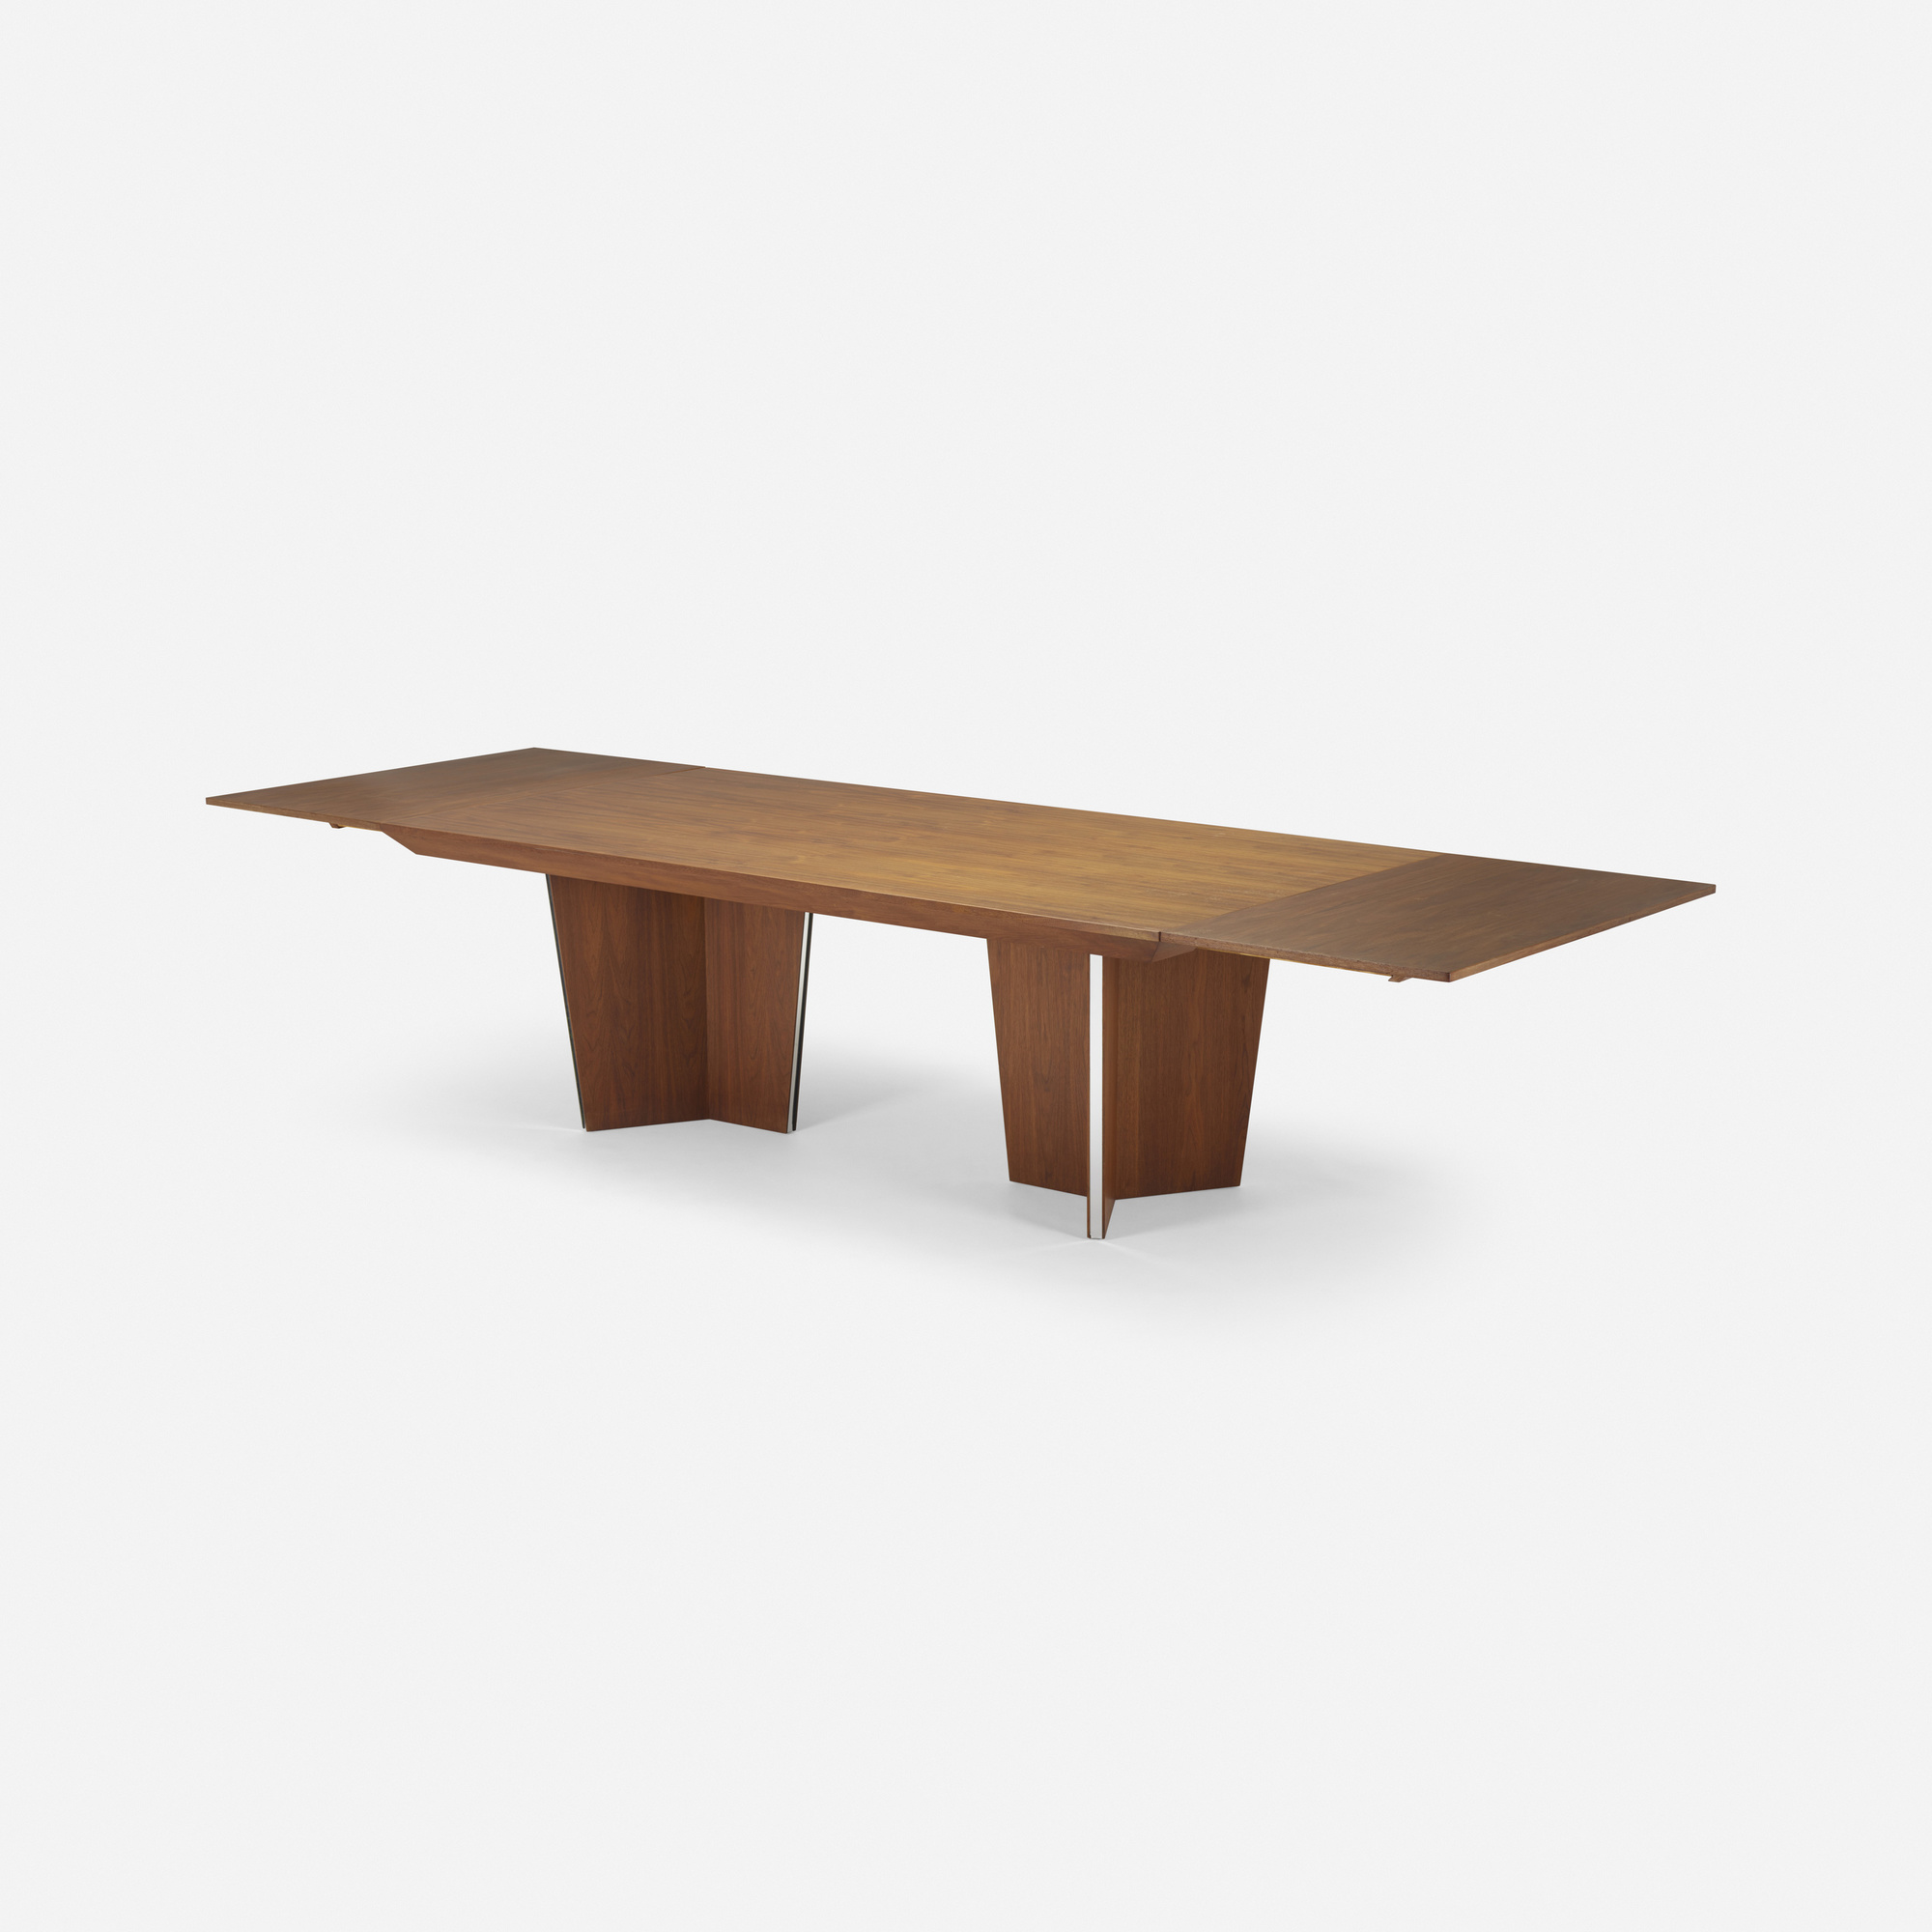 428 Vladimir Kagan dining table Design 8 June 2017